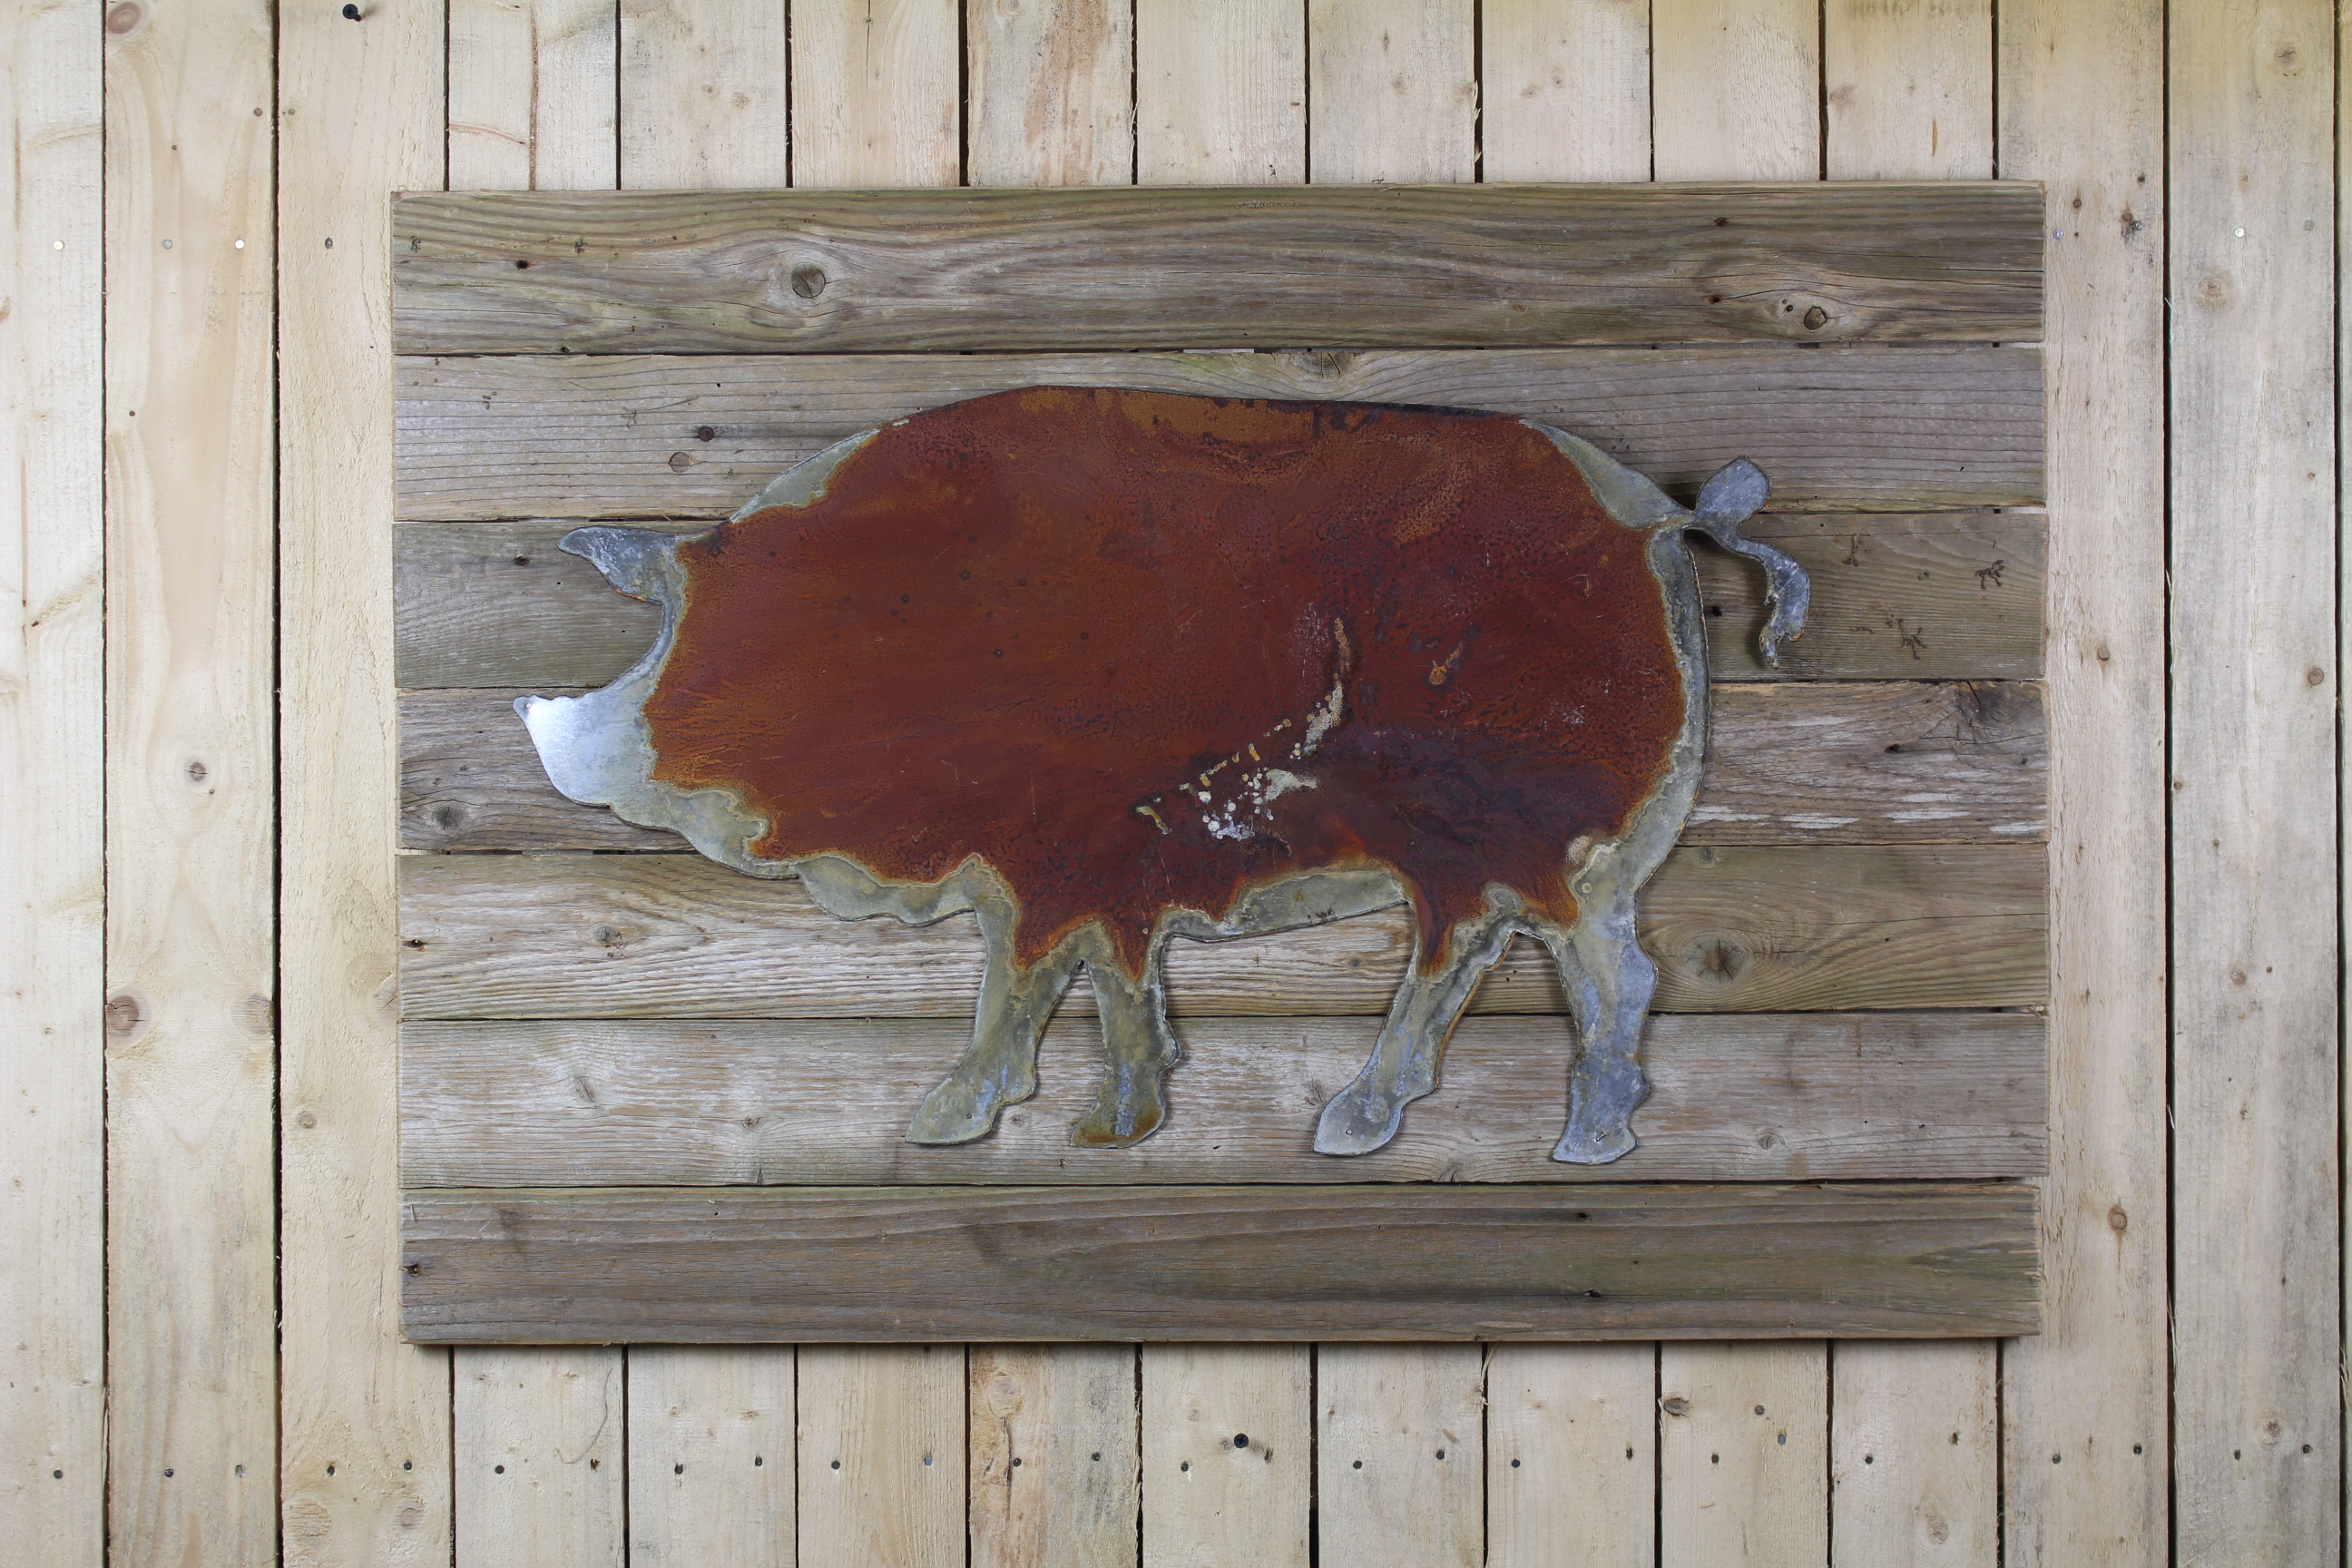 Rustic pig on woodback